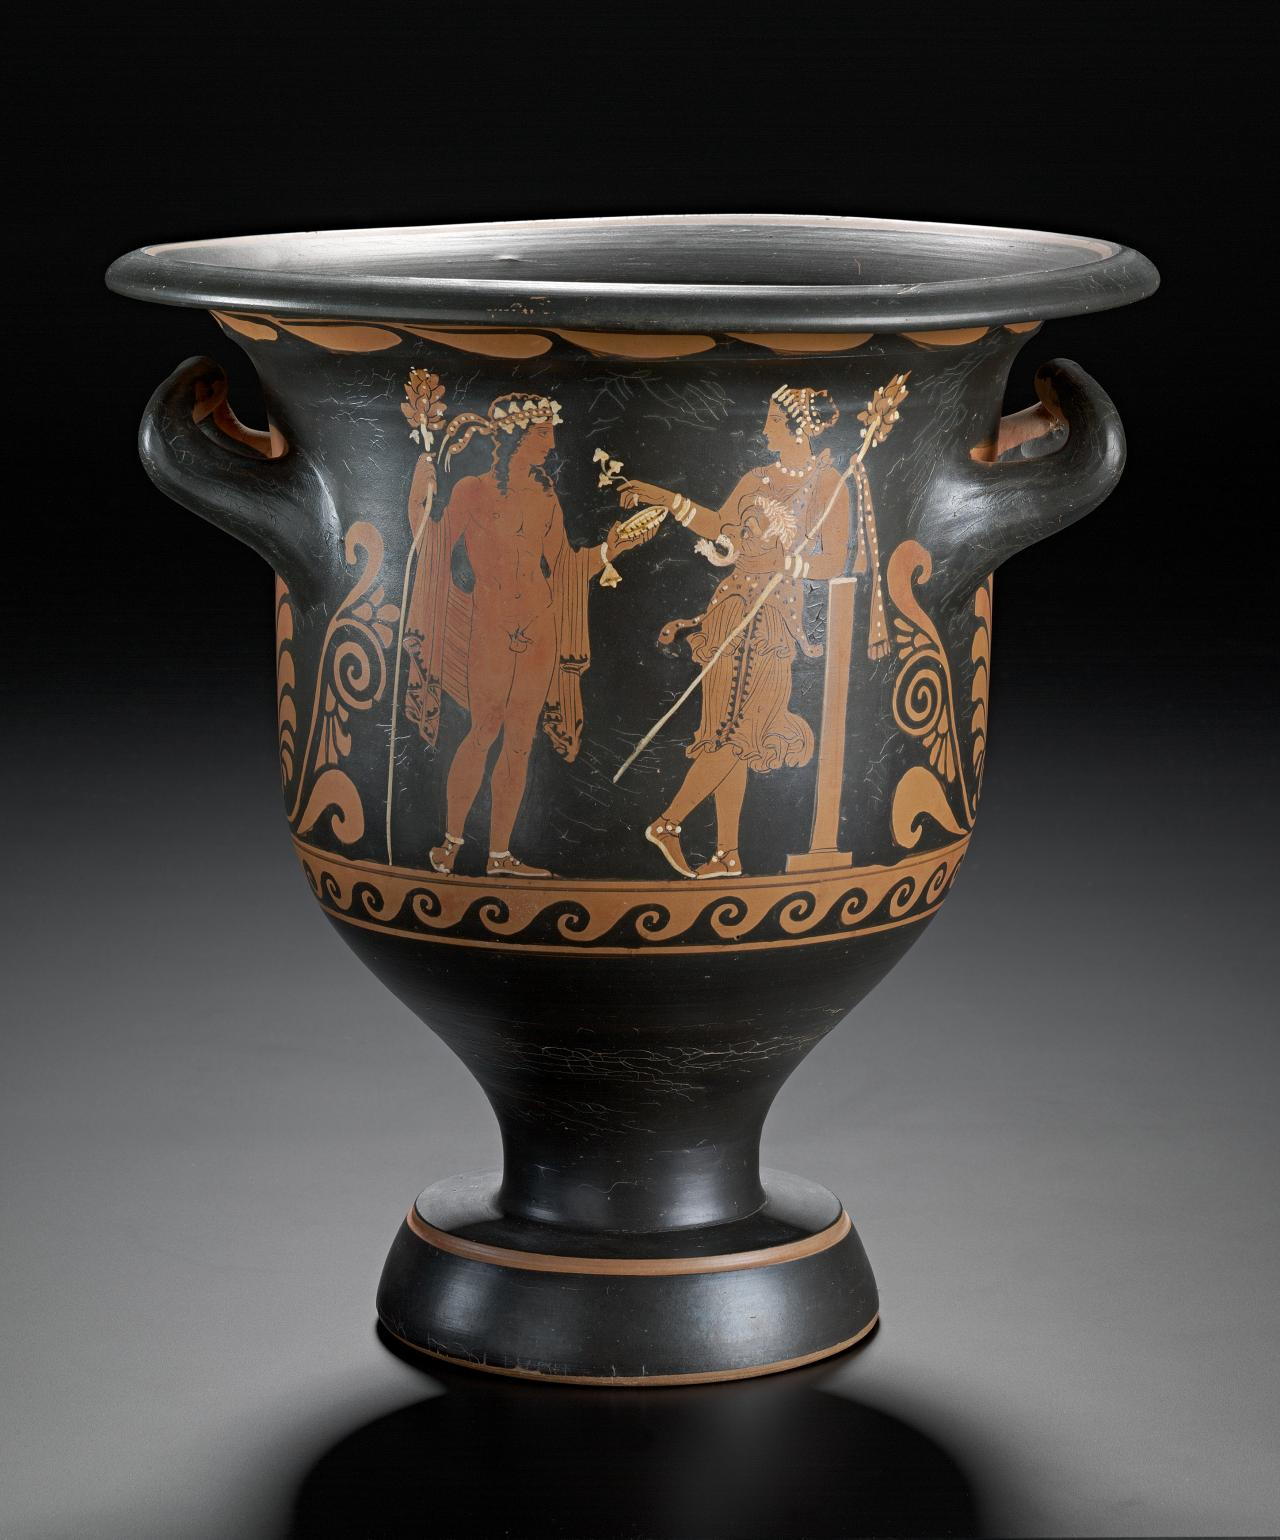 Recent additions to the collection of greek vases ngv paestum the ancient greek poseidonia is situated on the west coast of italy in the gulf of salerno just under a hundred kilometres south of naples floridaeventfo Gallery